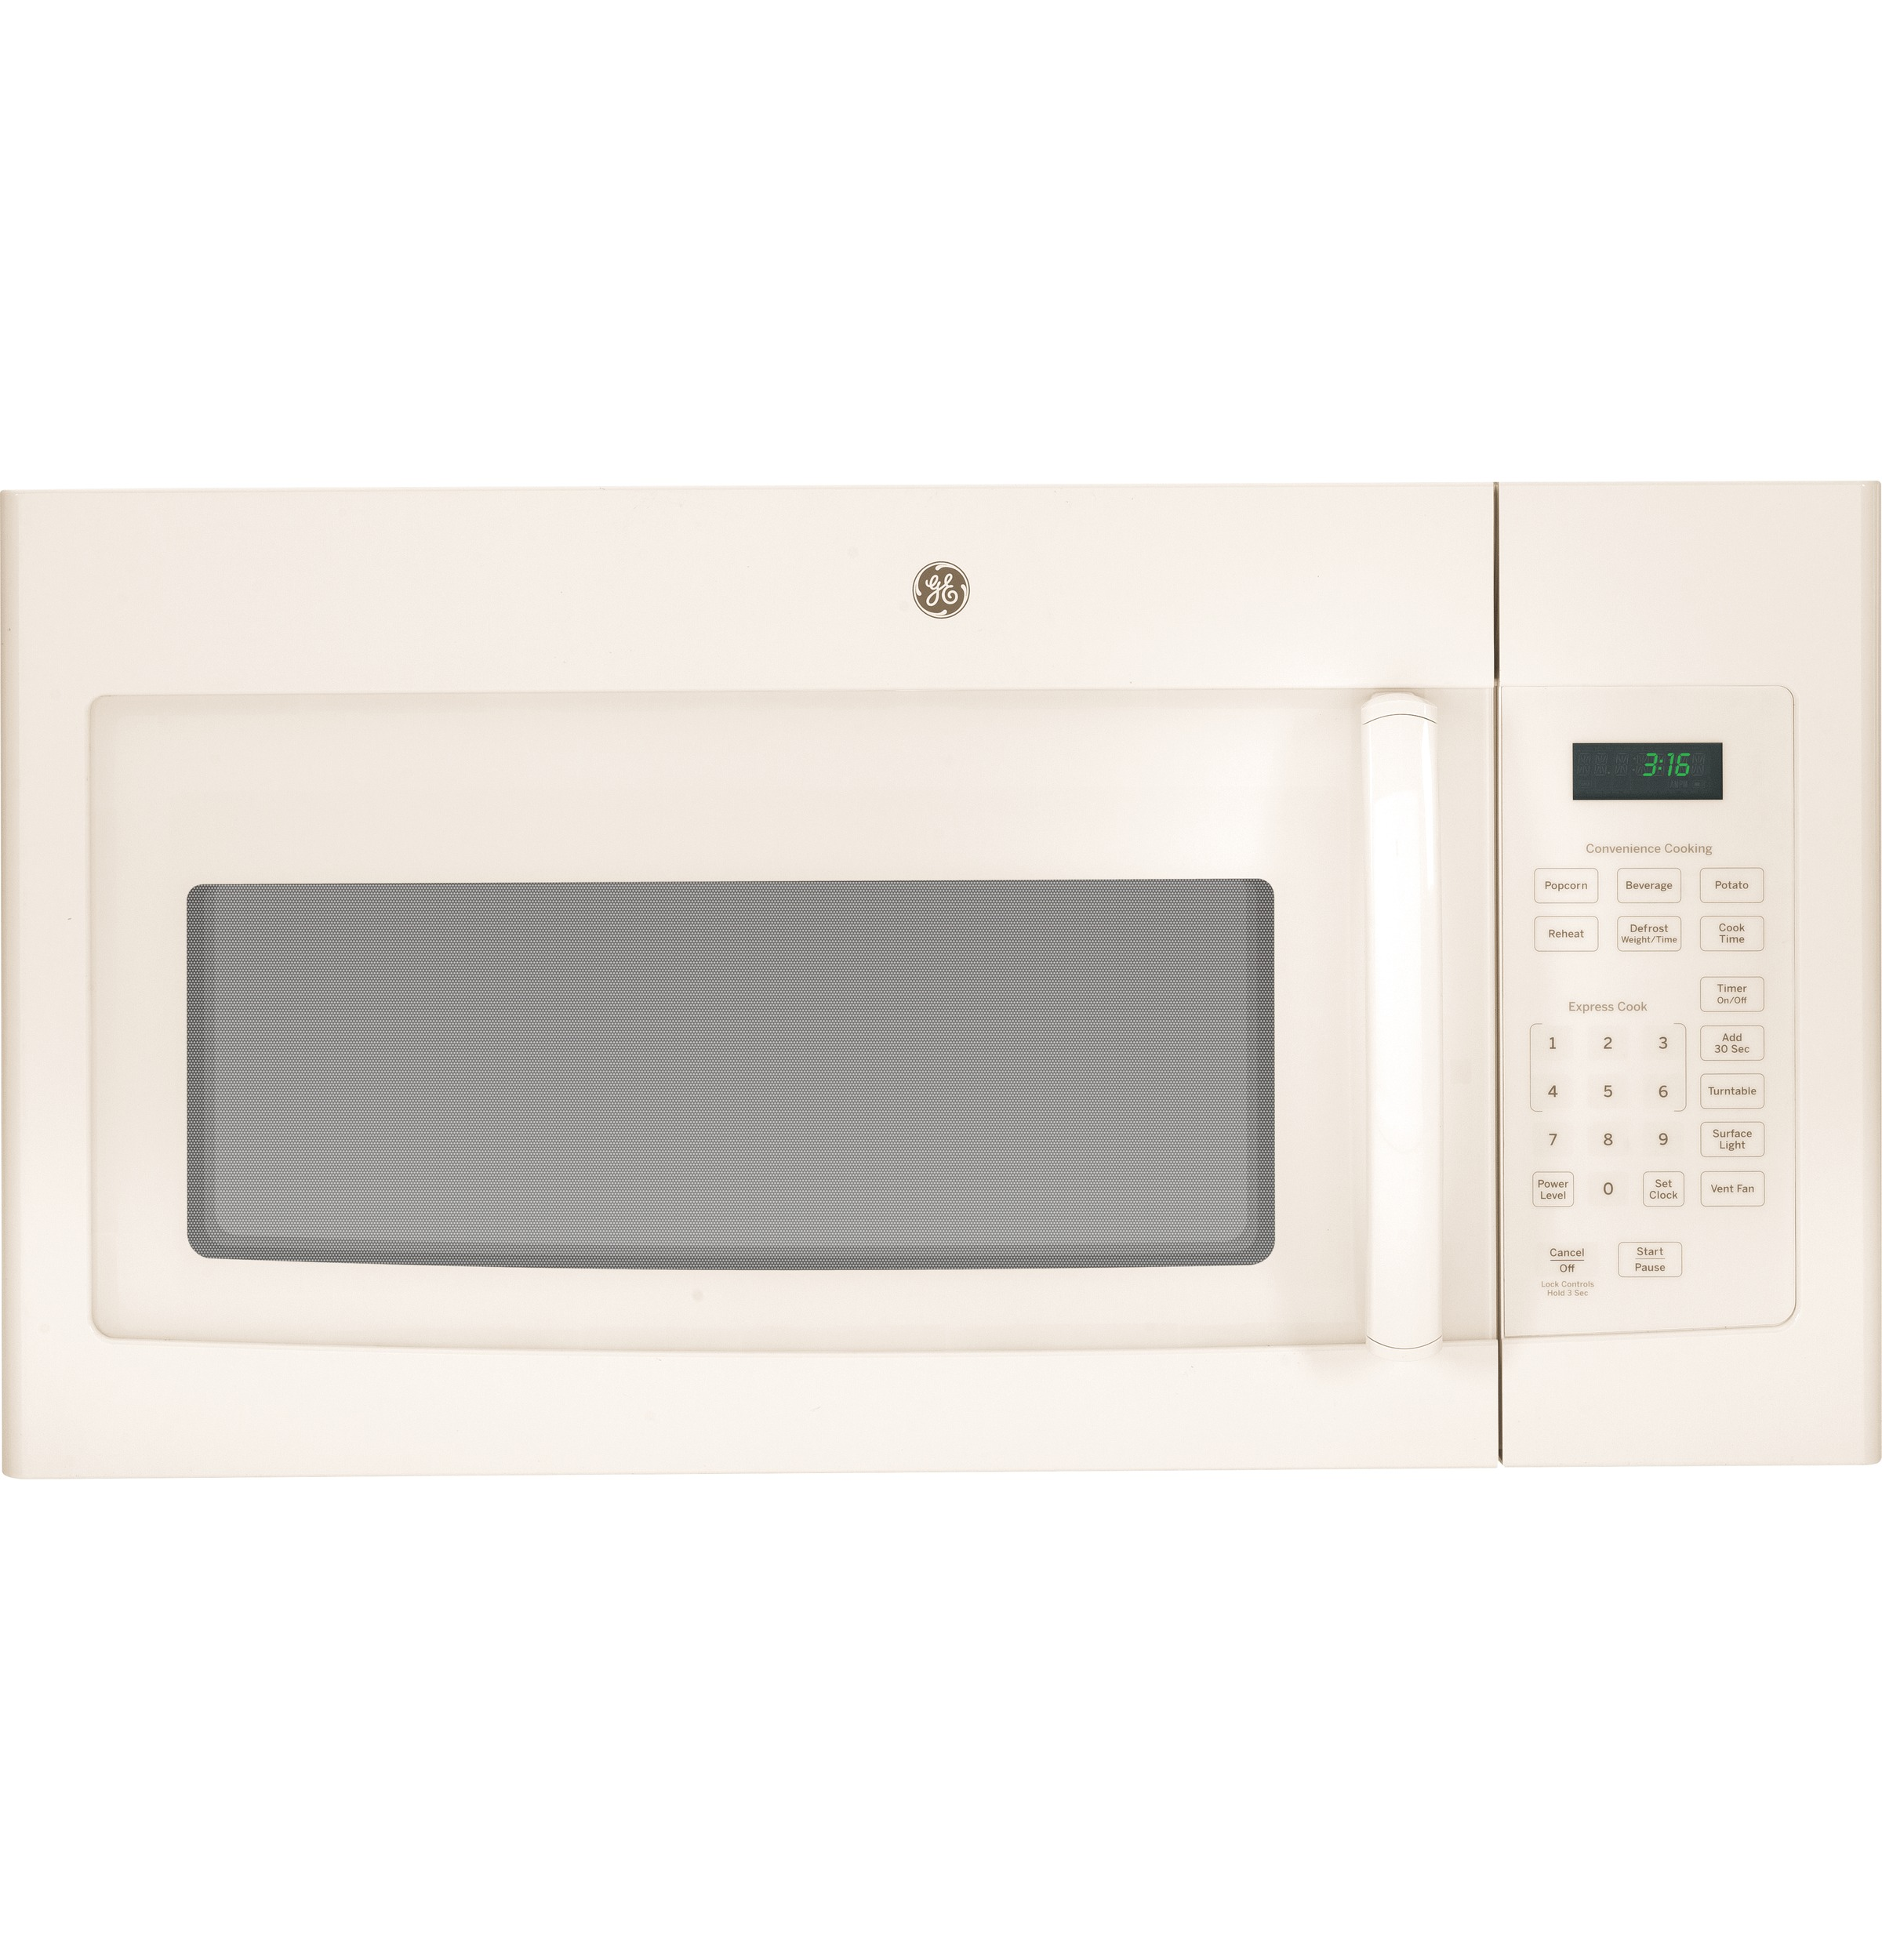 Ge microwave model jes1142spss manual